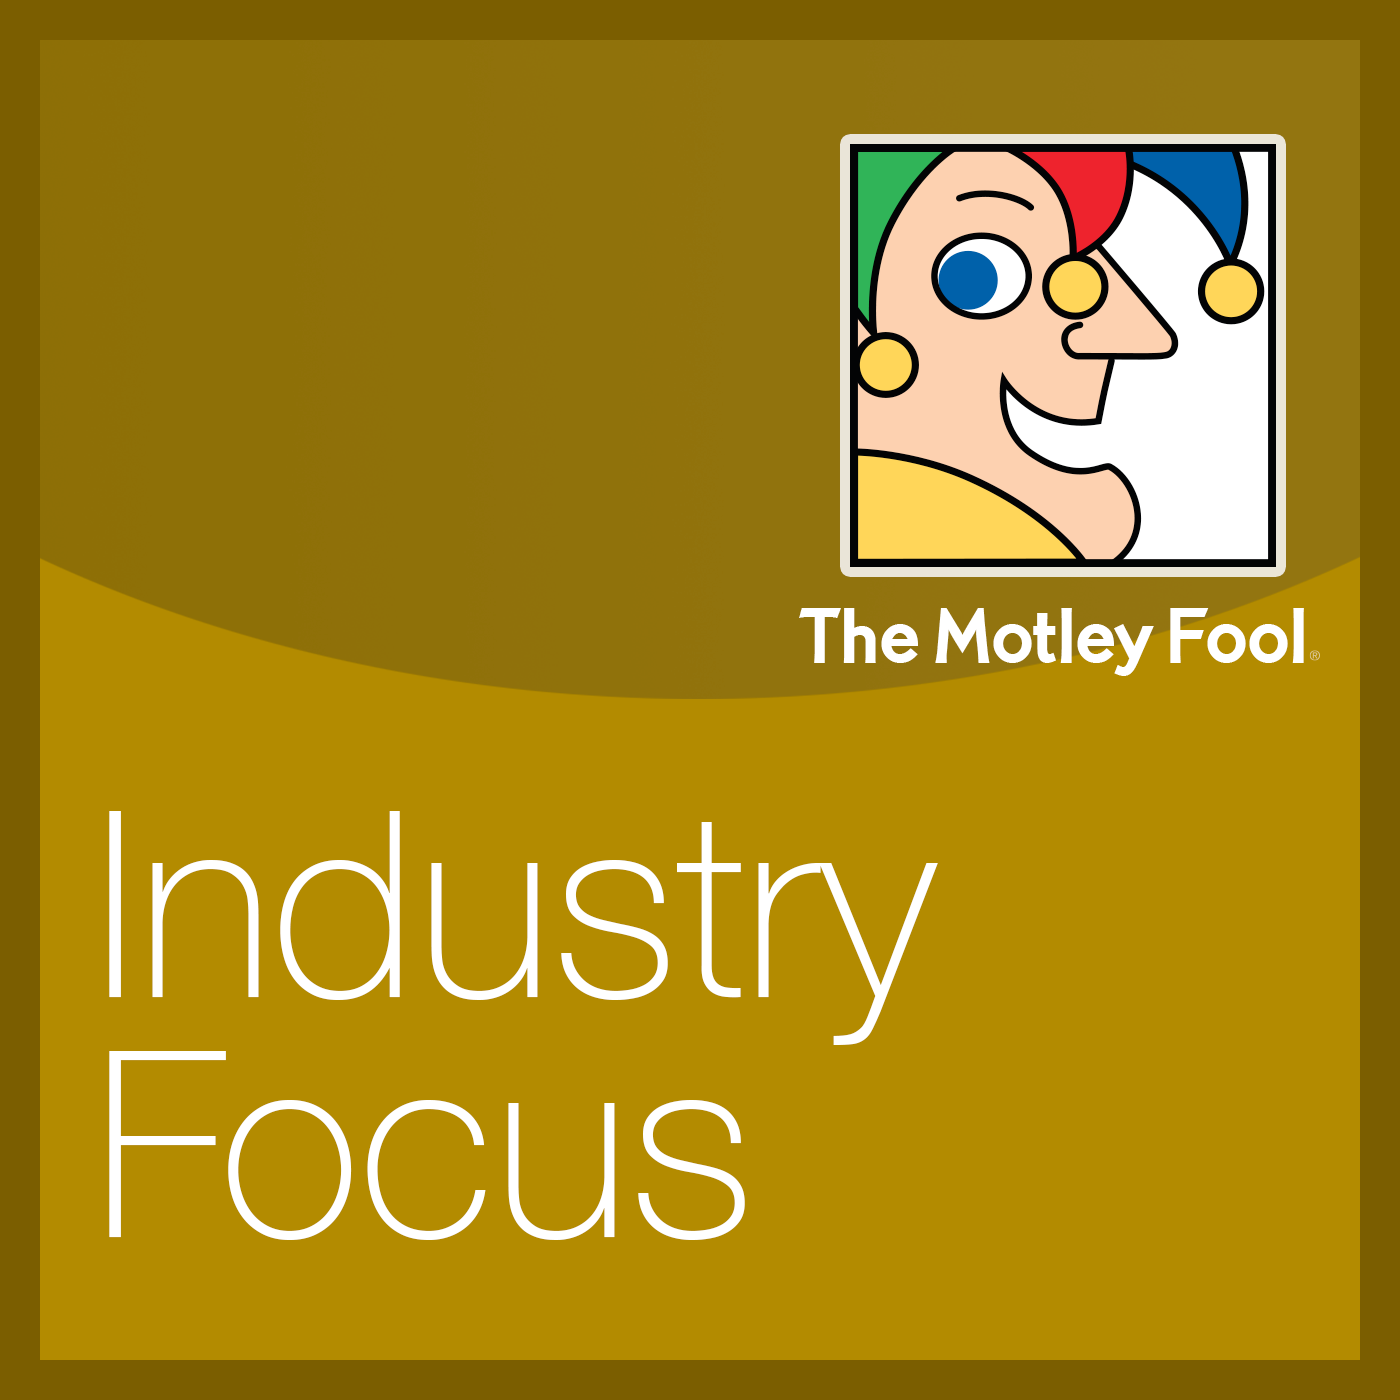 CG: Warby Parker Co-Founder David Gilboa Joins Industry Focus Logo